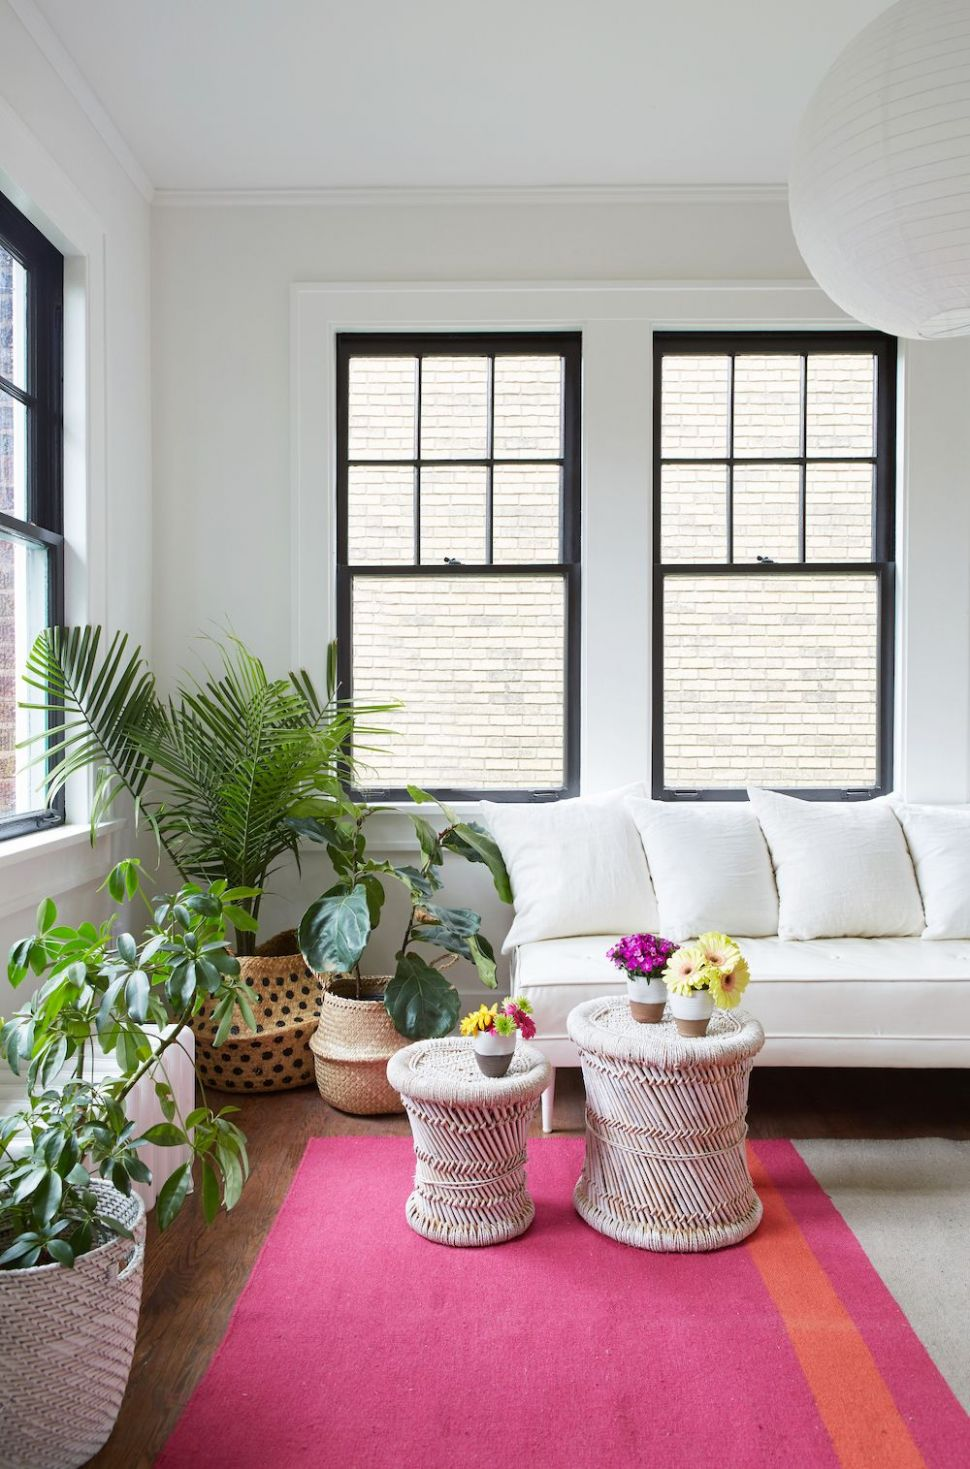 9 Best Living Room Decorating Ideas & Designs - HouseBeautiful